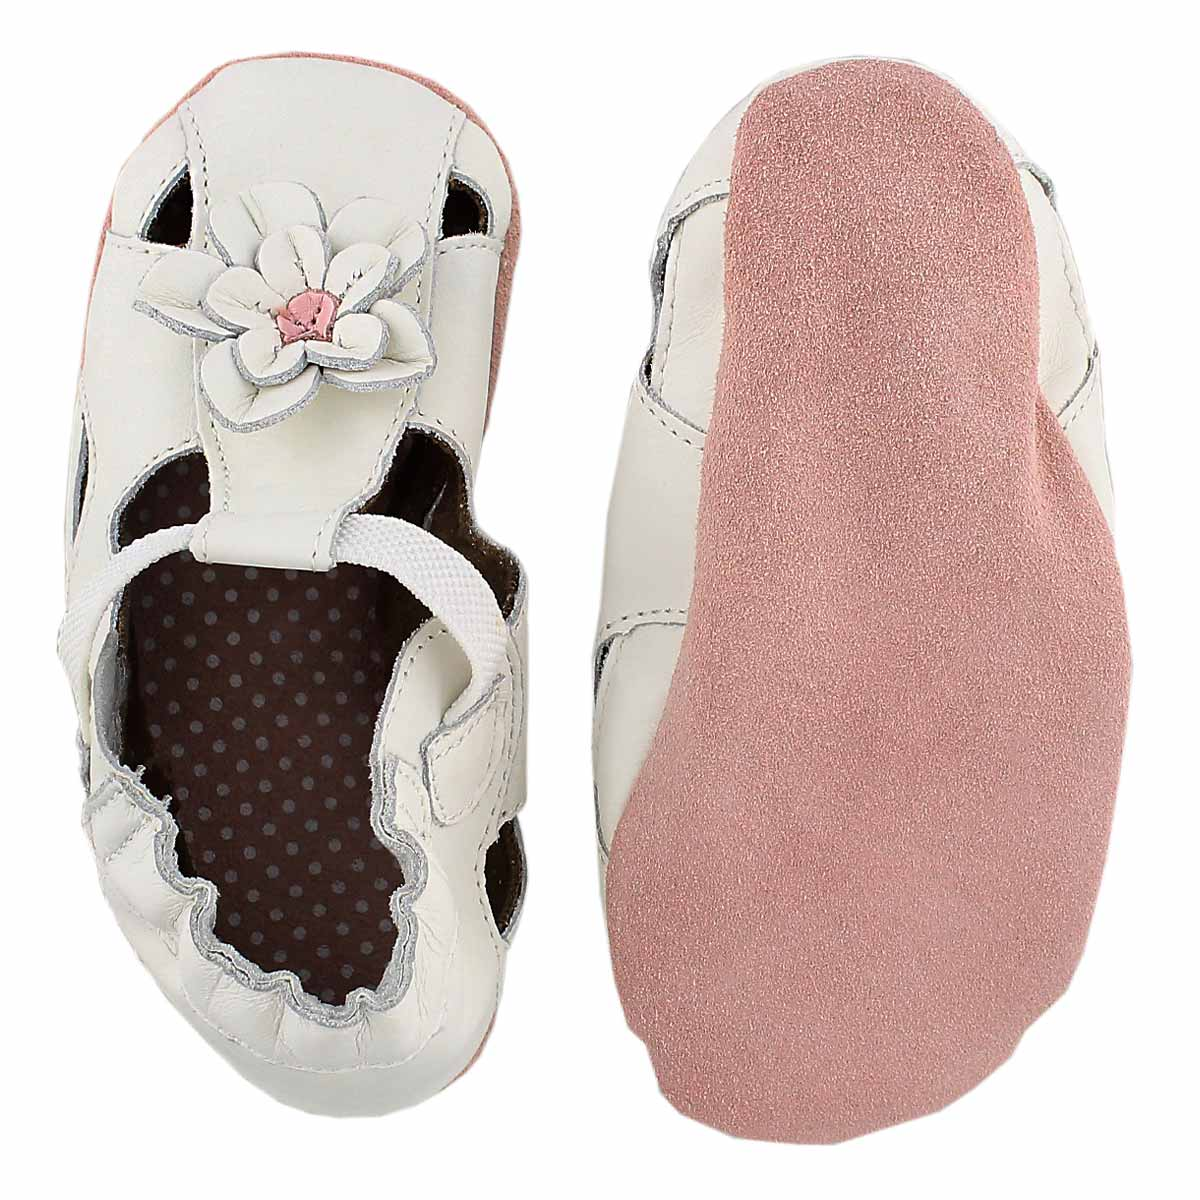 Infs-g Pretty Pansy white soft slipper